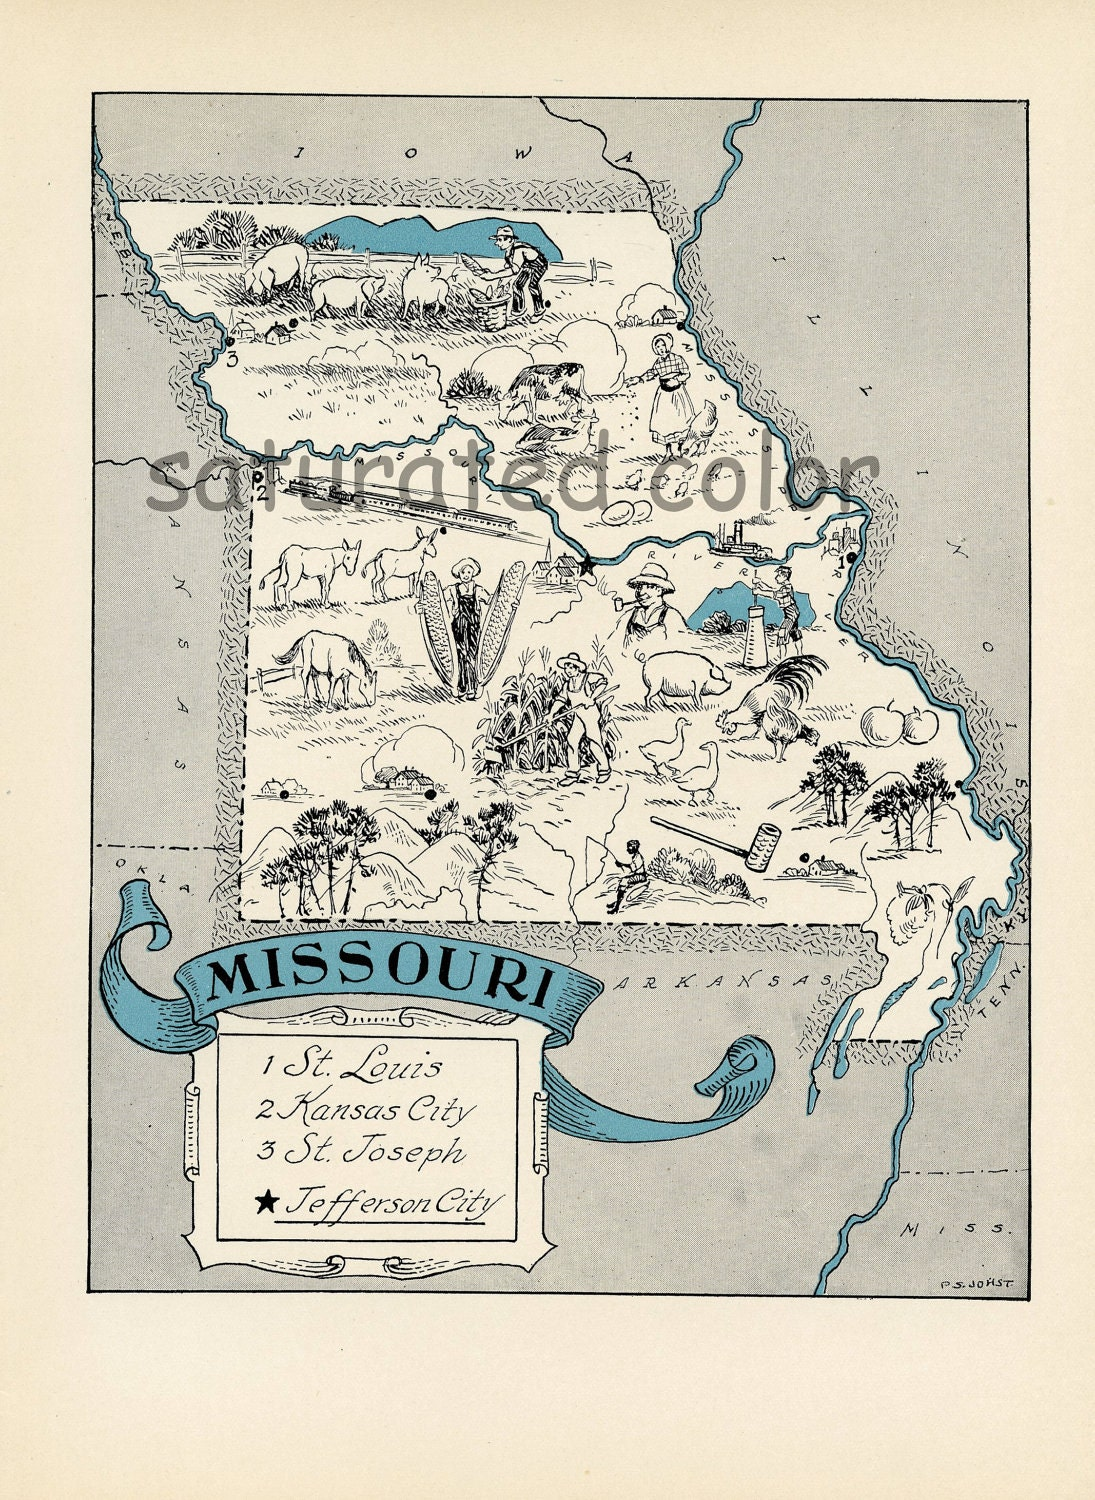 St Louis Maps Missouri US Maps Of St Louis Reference Map Of - Missouri on the map of usa